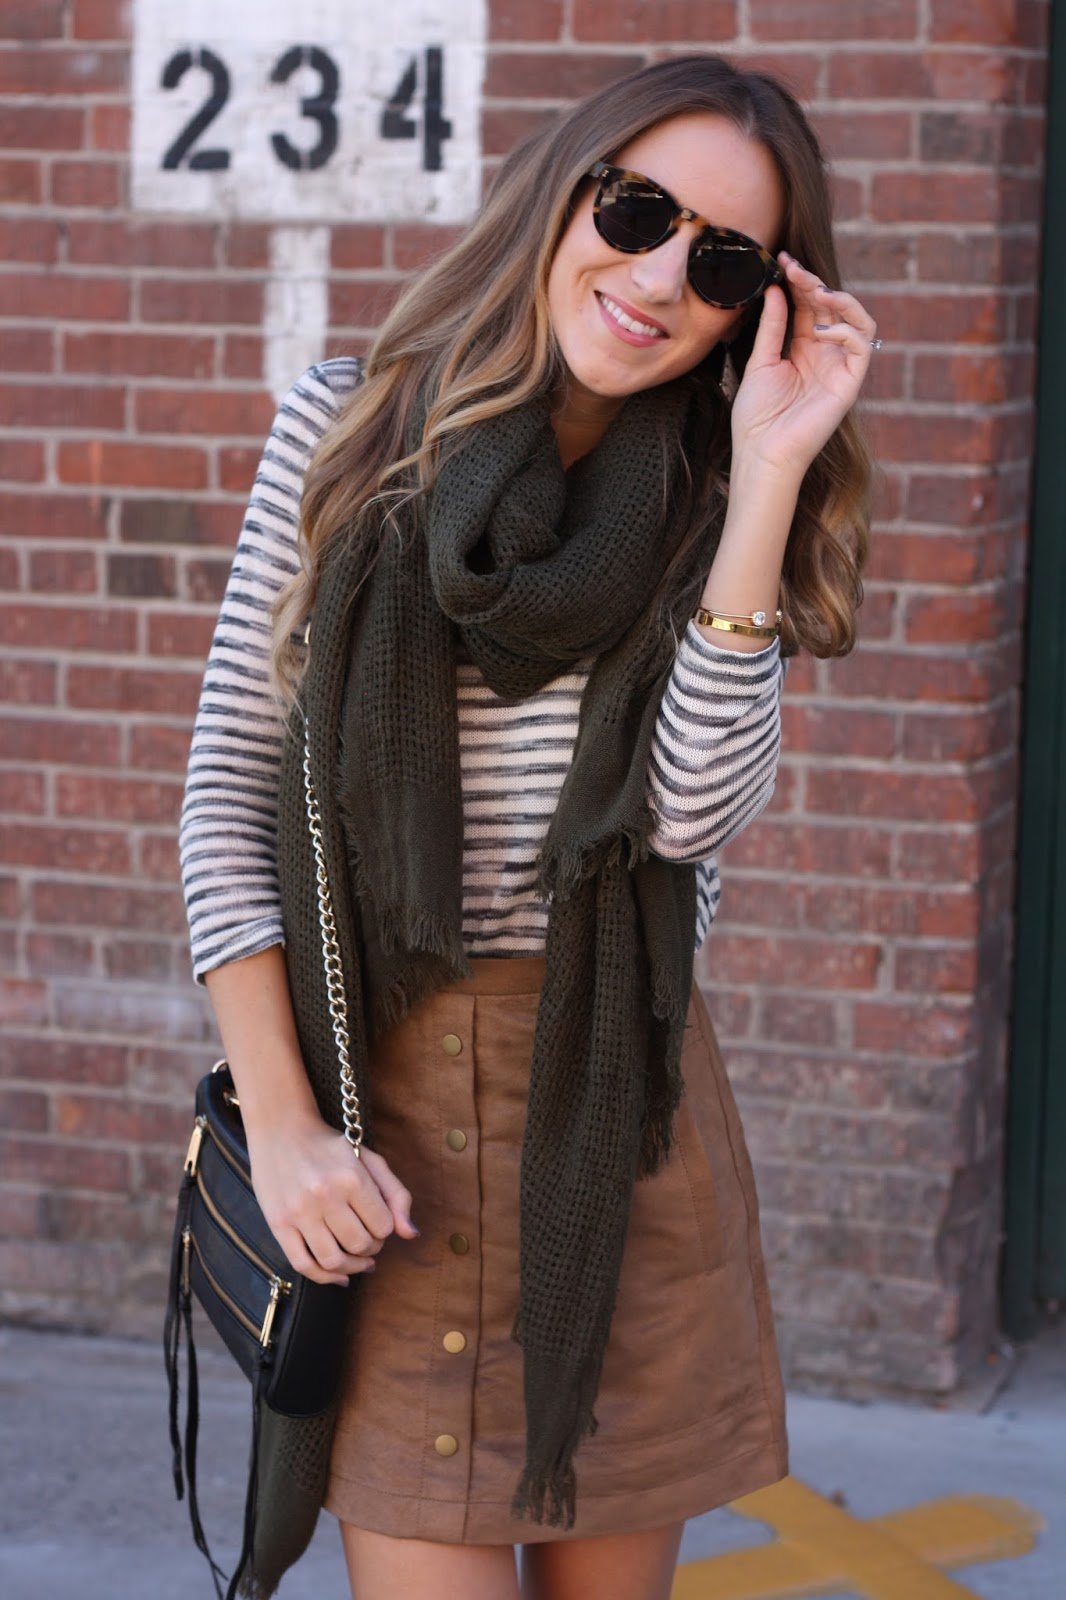 e5ee374b40ed Top: Stripe Sweater c/o Love on a Hanger // Skirt: H&M – lots of Suede  Skirt options here // Scarf: Forever 21 // Shoes: Sam Edelman 'Paige' in  Putty ...